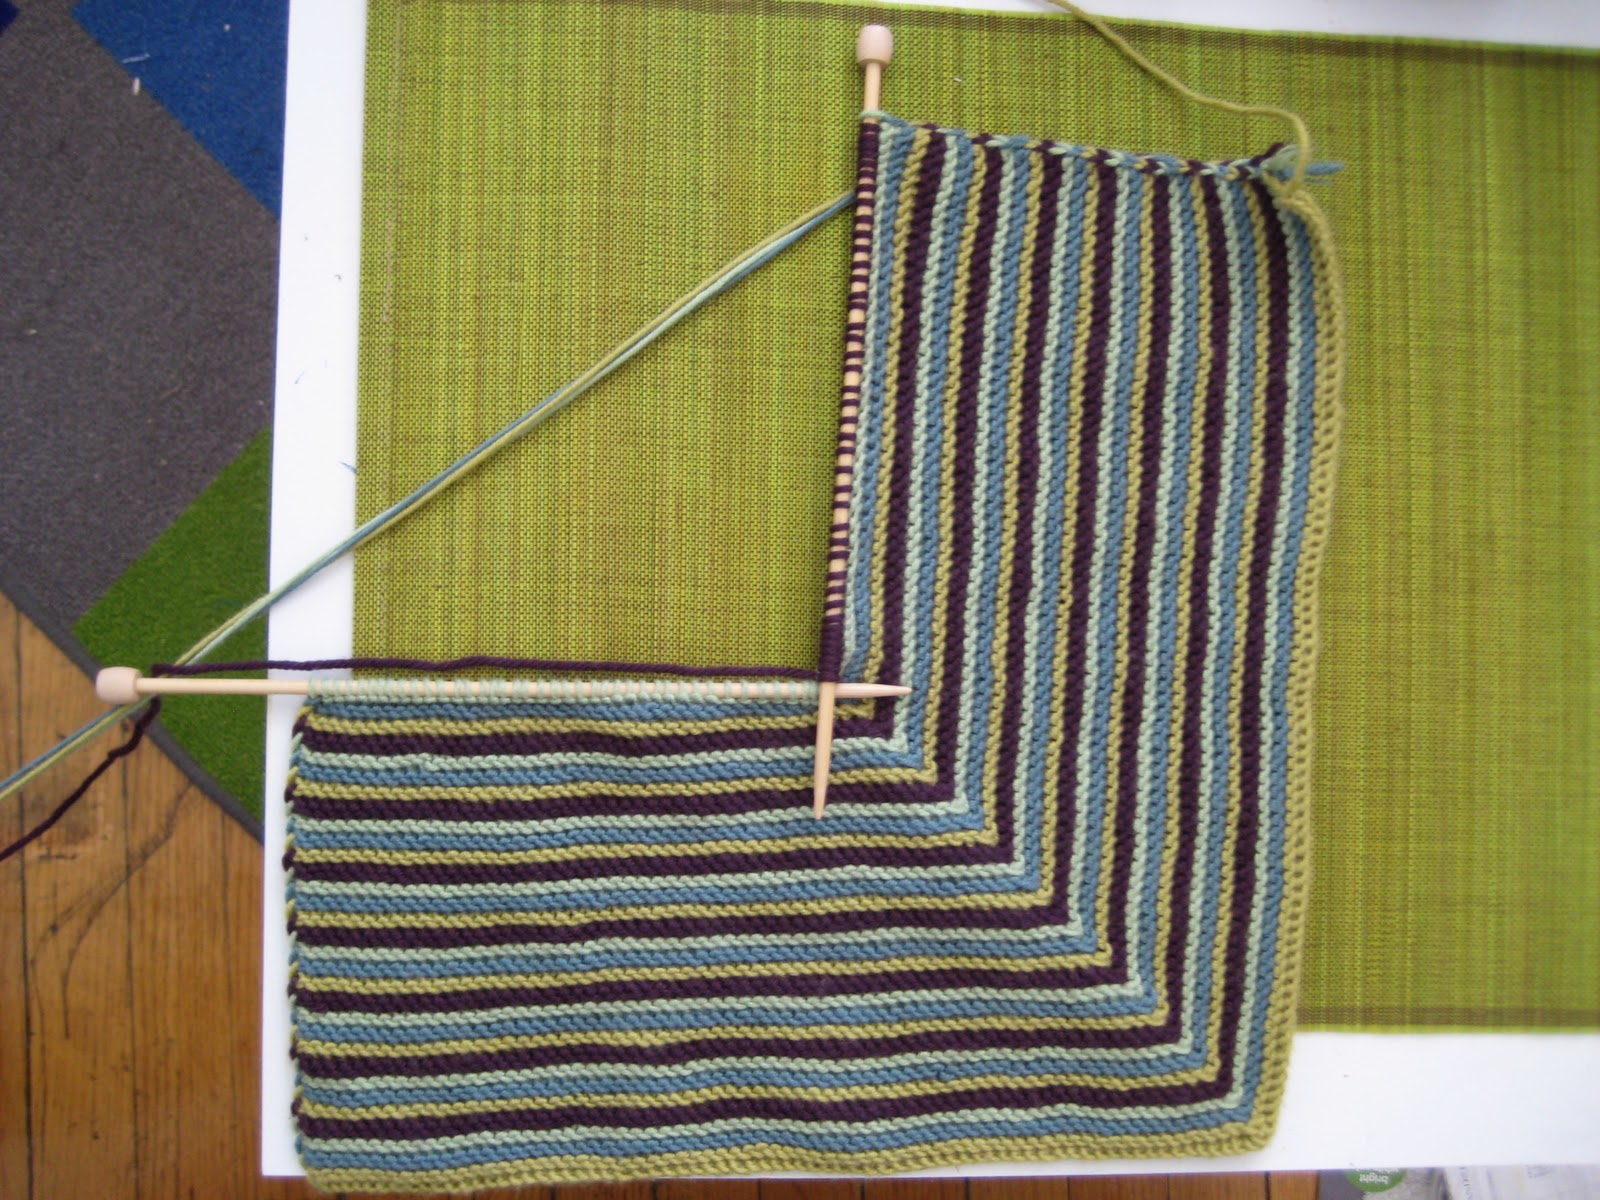 Sk2p Stitch In Knitting : SchizoArt: Domino Knitting Hyde Park Pillow